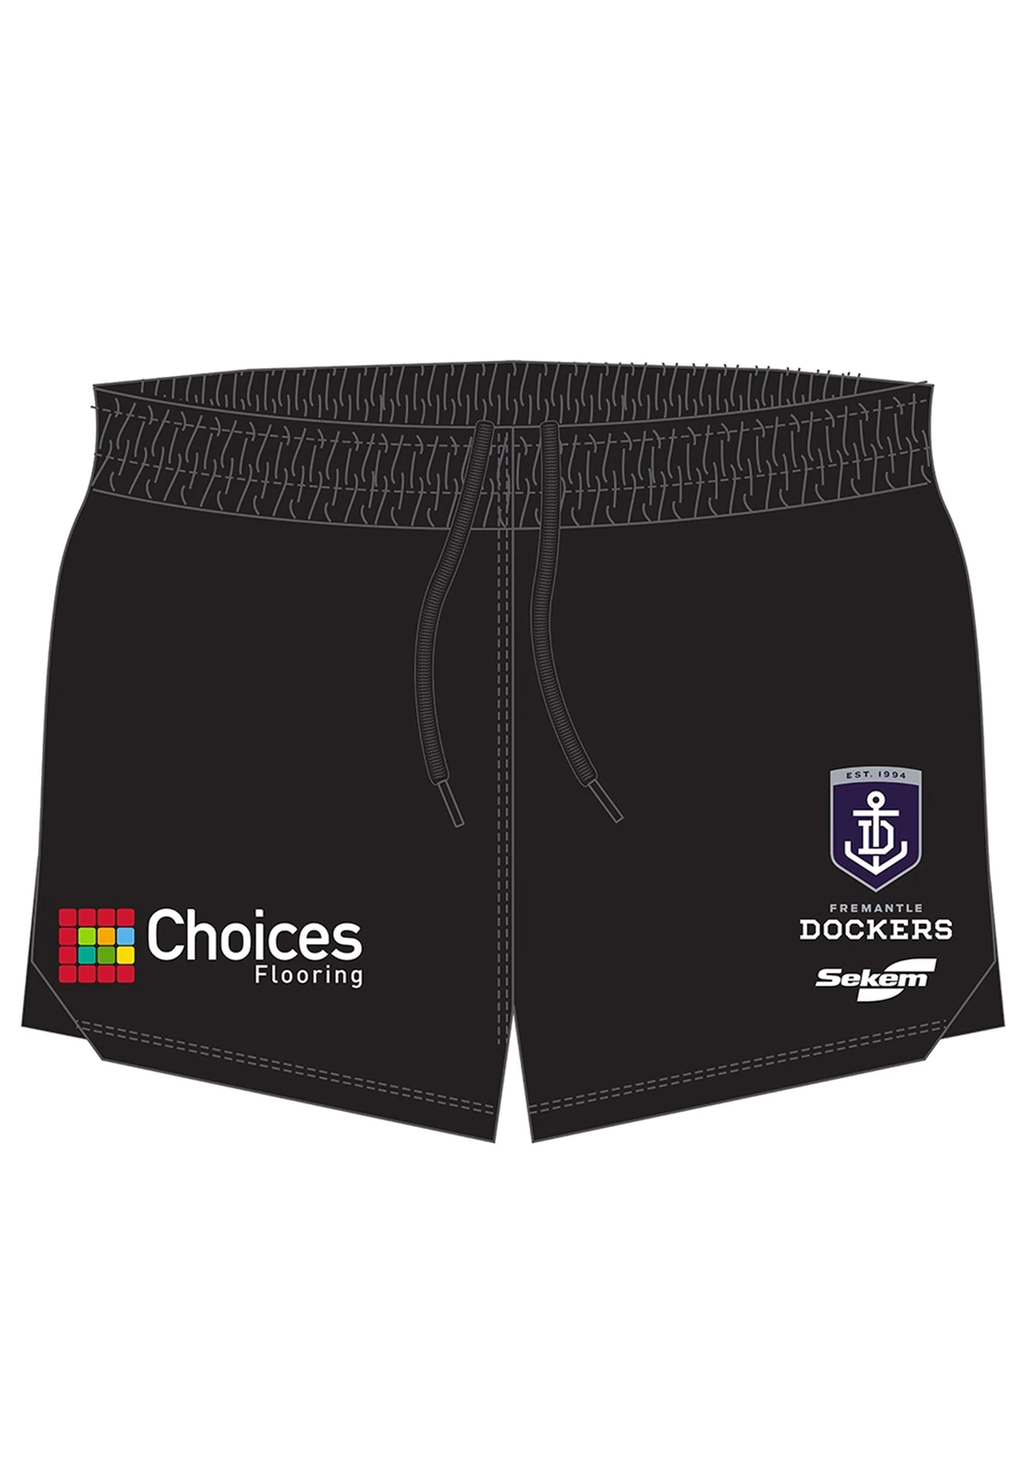 BURLEY SEKEM MENS FREMANTLE DOCKERS PLAYER RUNNING SHORTS